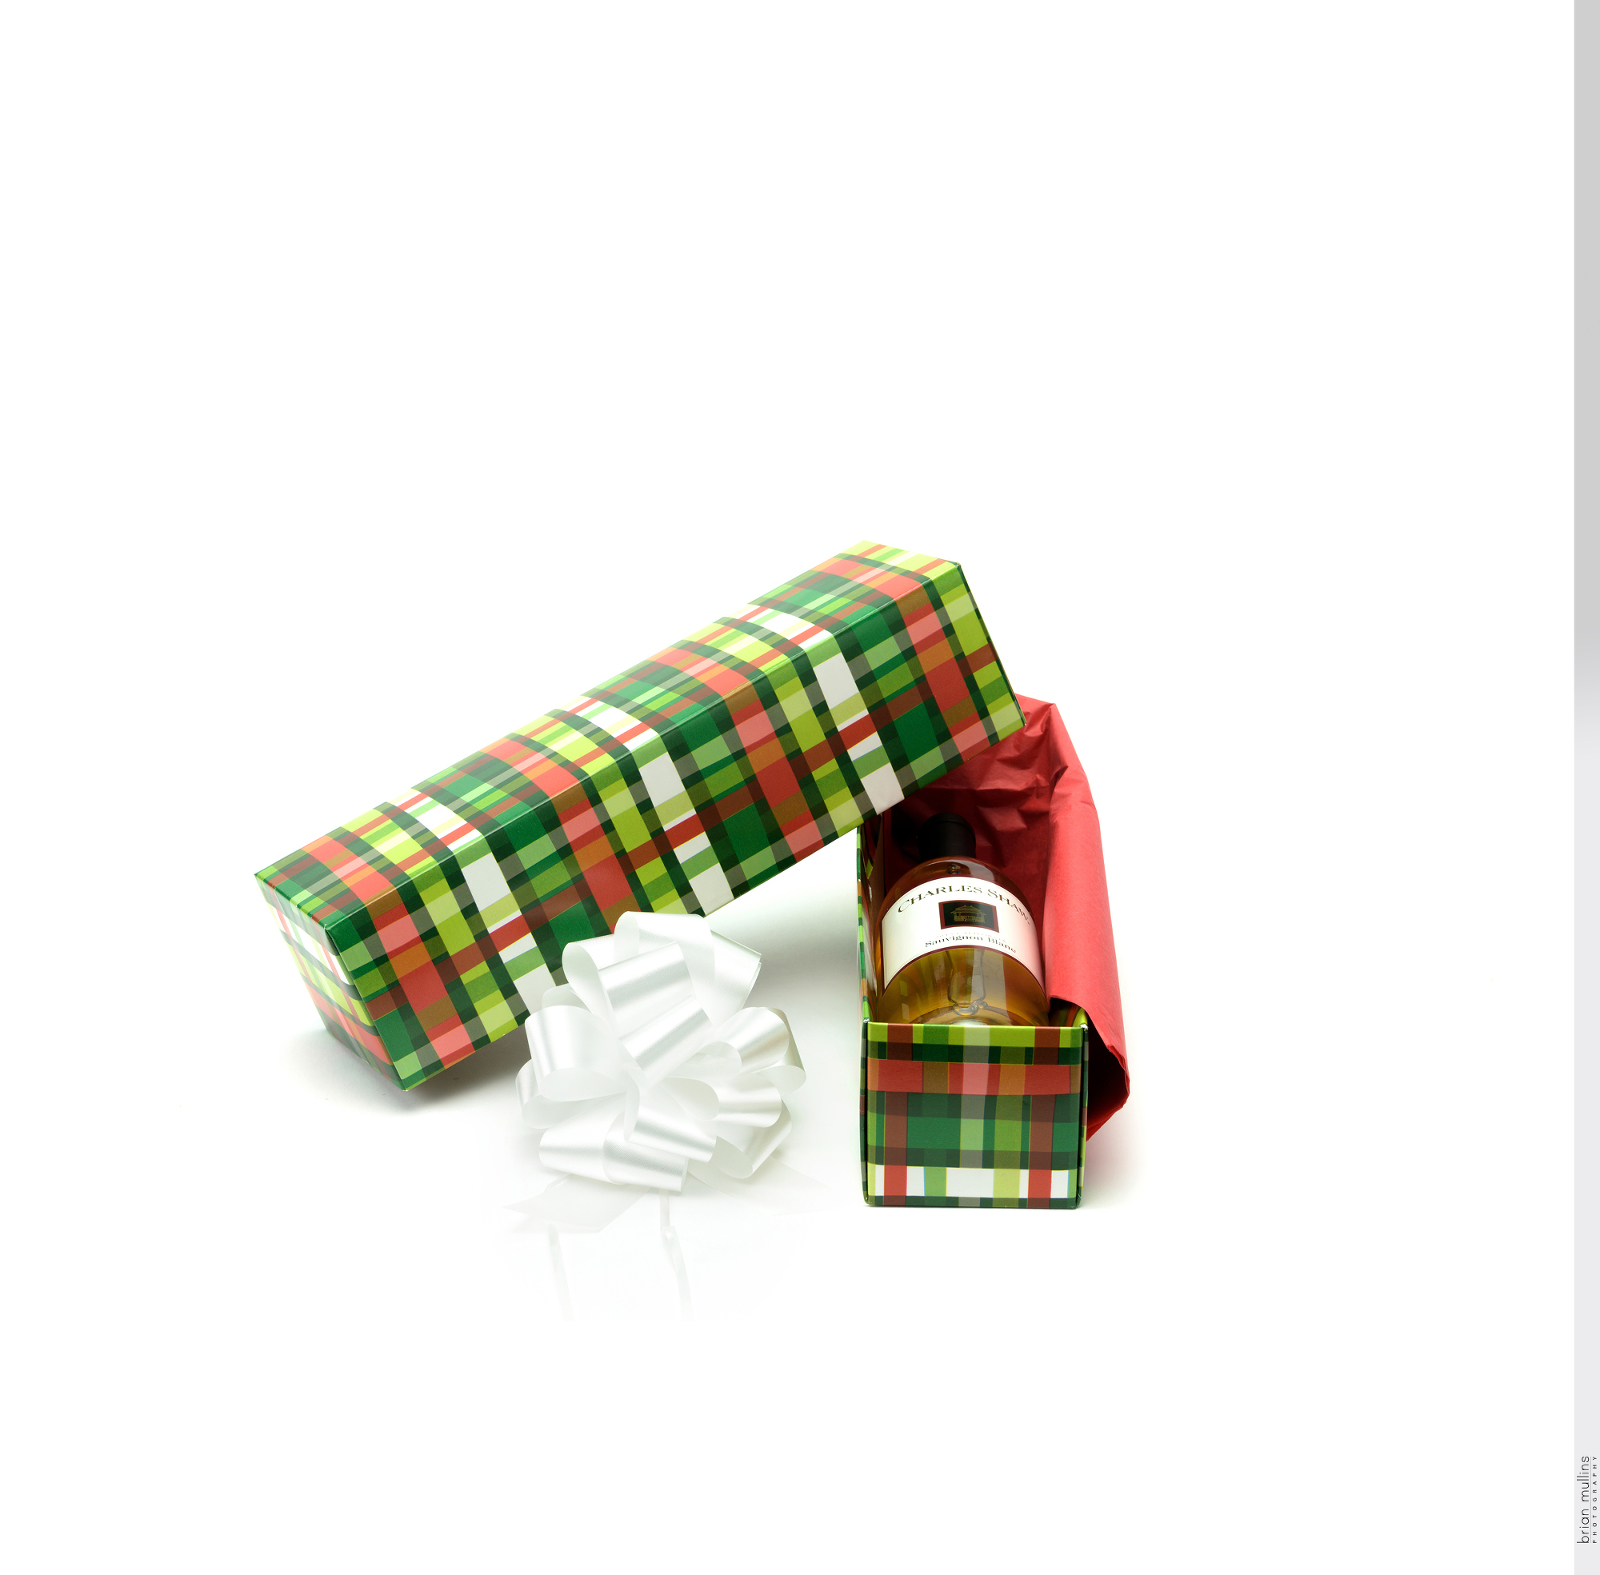 ready wrap gift box.0089%28pp w1600 h1575%29 - How product photography helps your product come alive